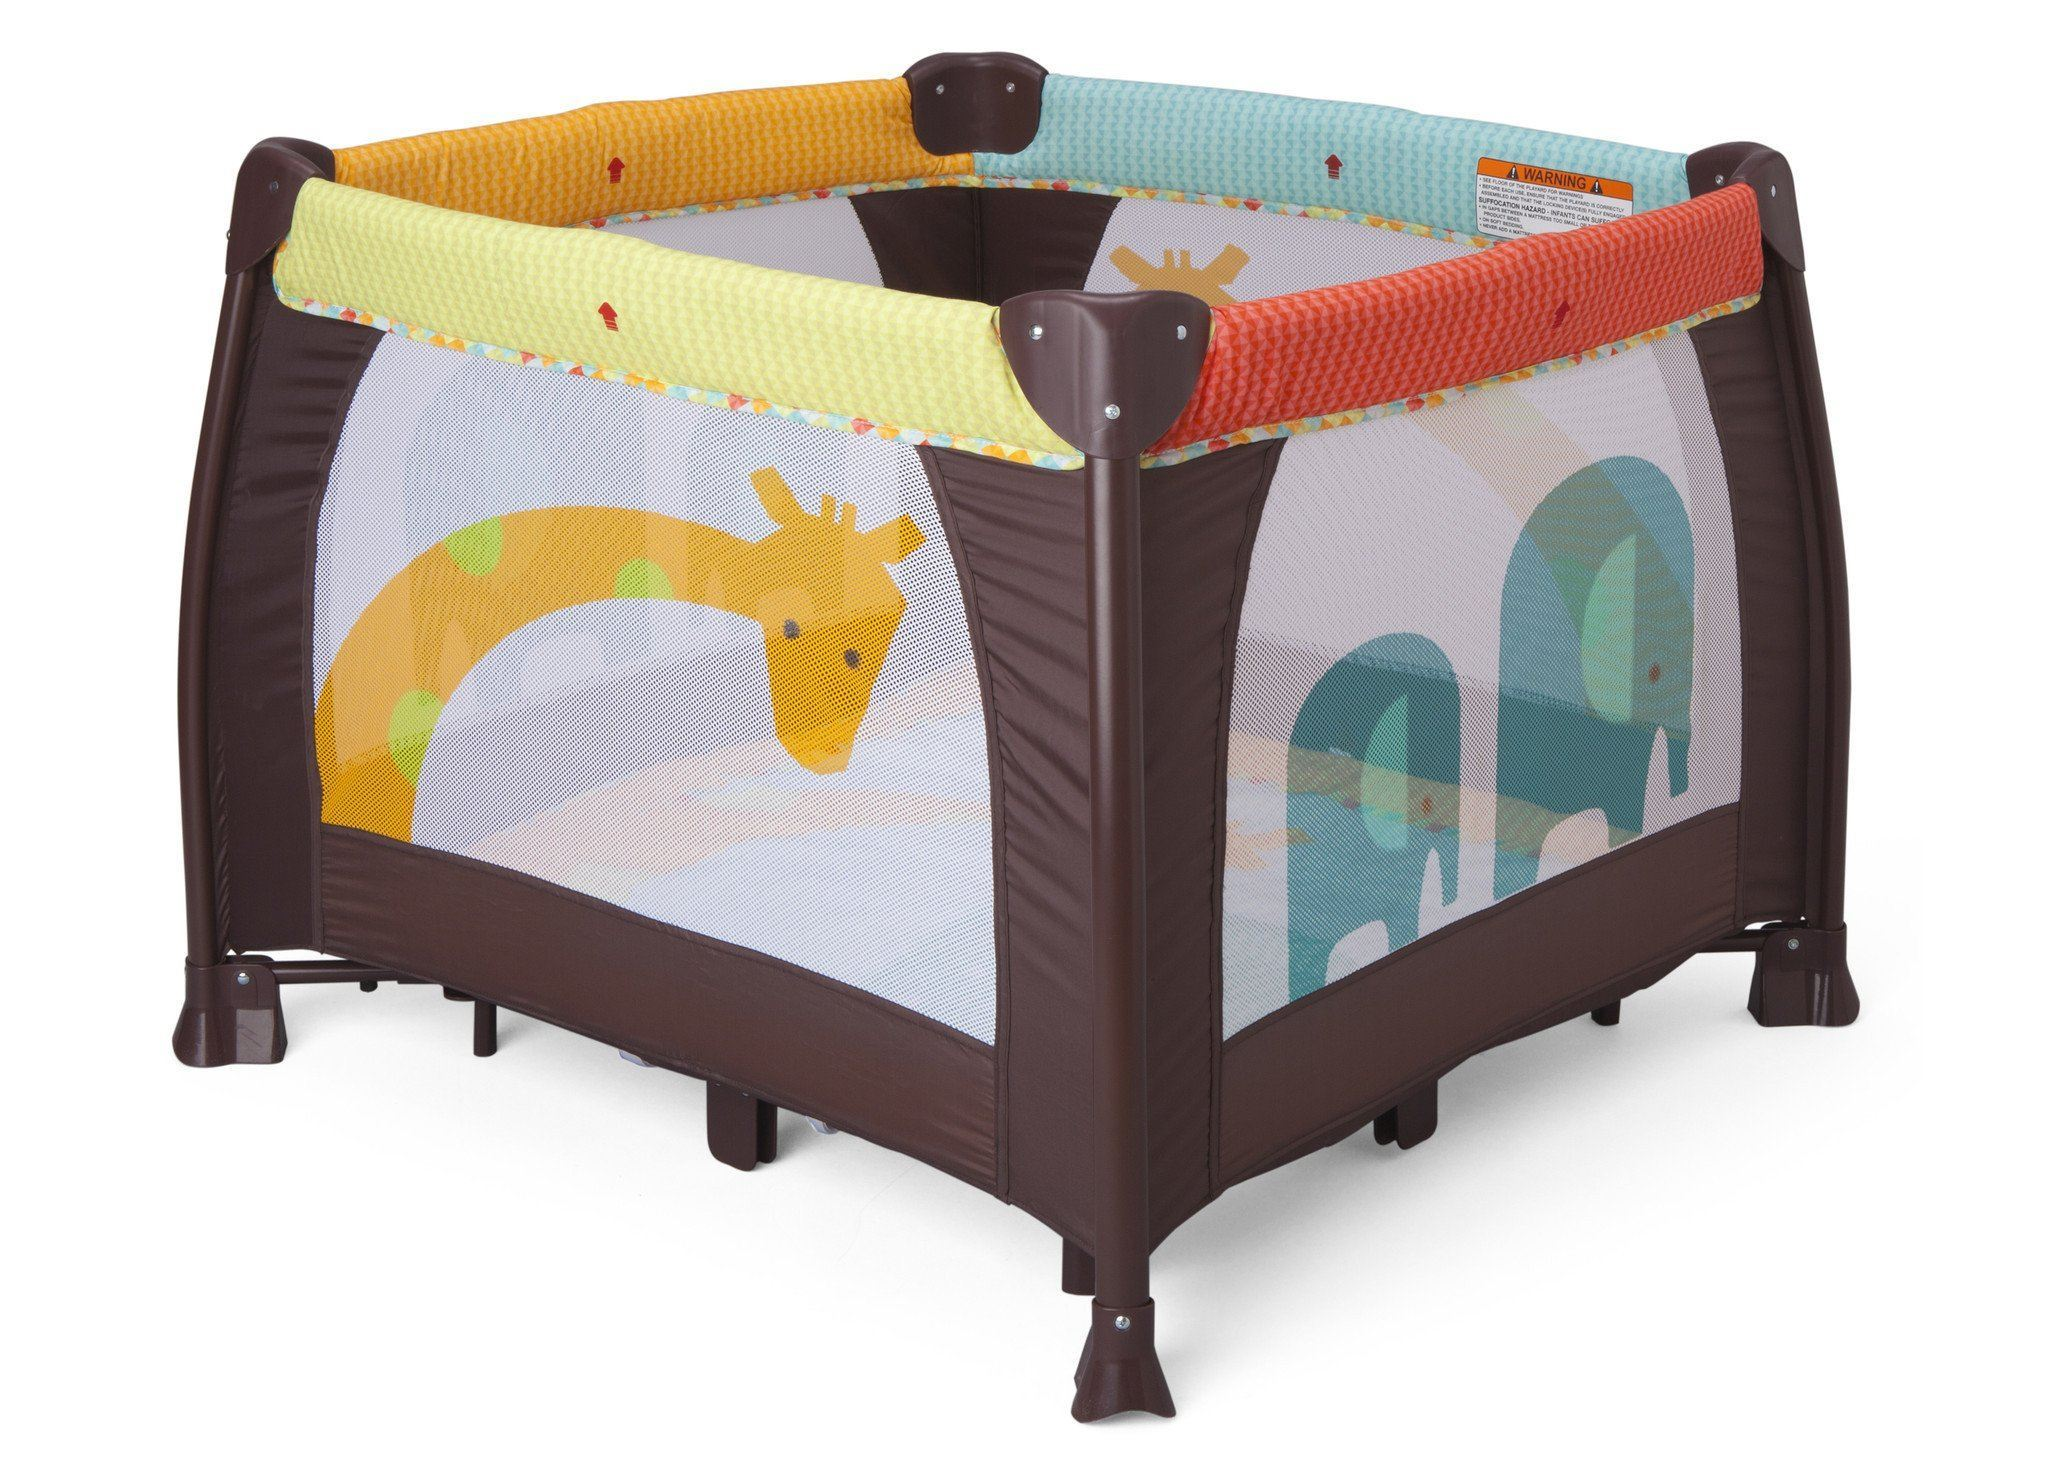 Delta Fun Time 36 x 36 Playard, Front View Novel Ideas (241) a1a